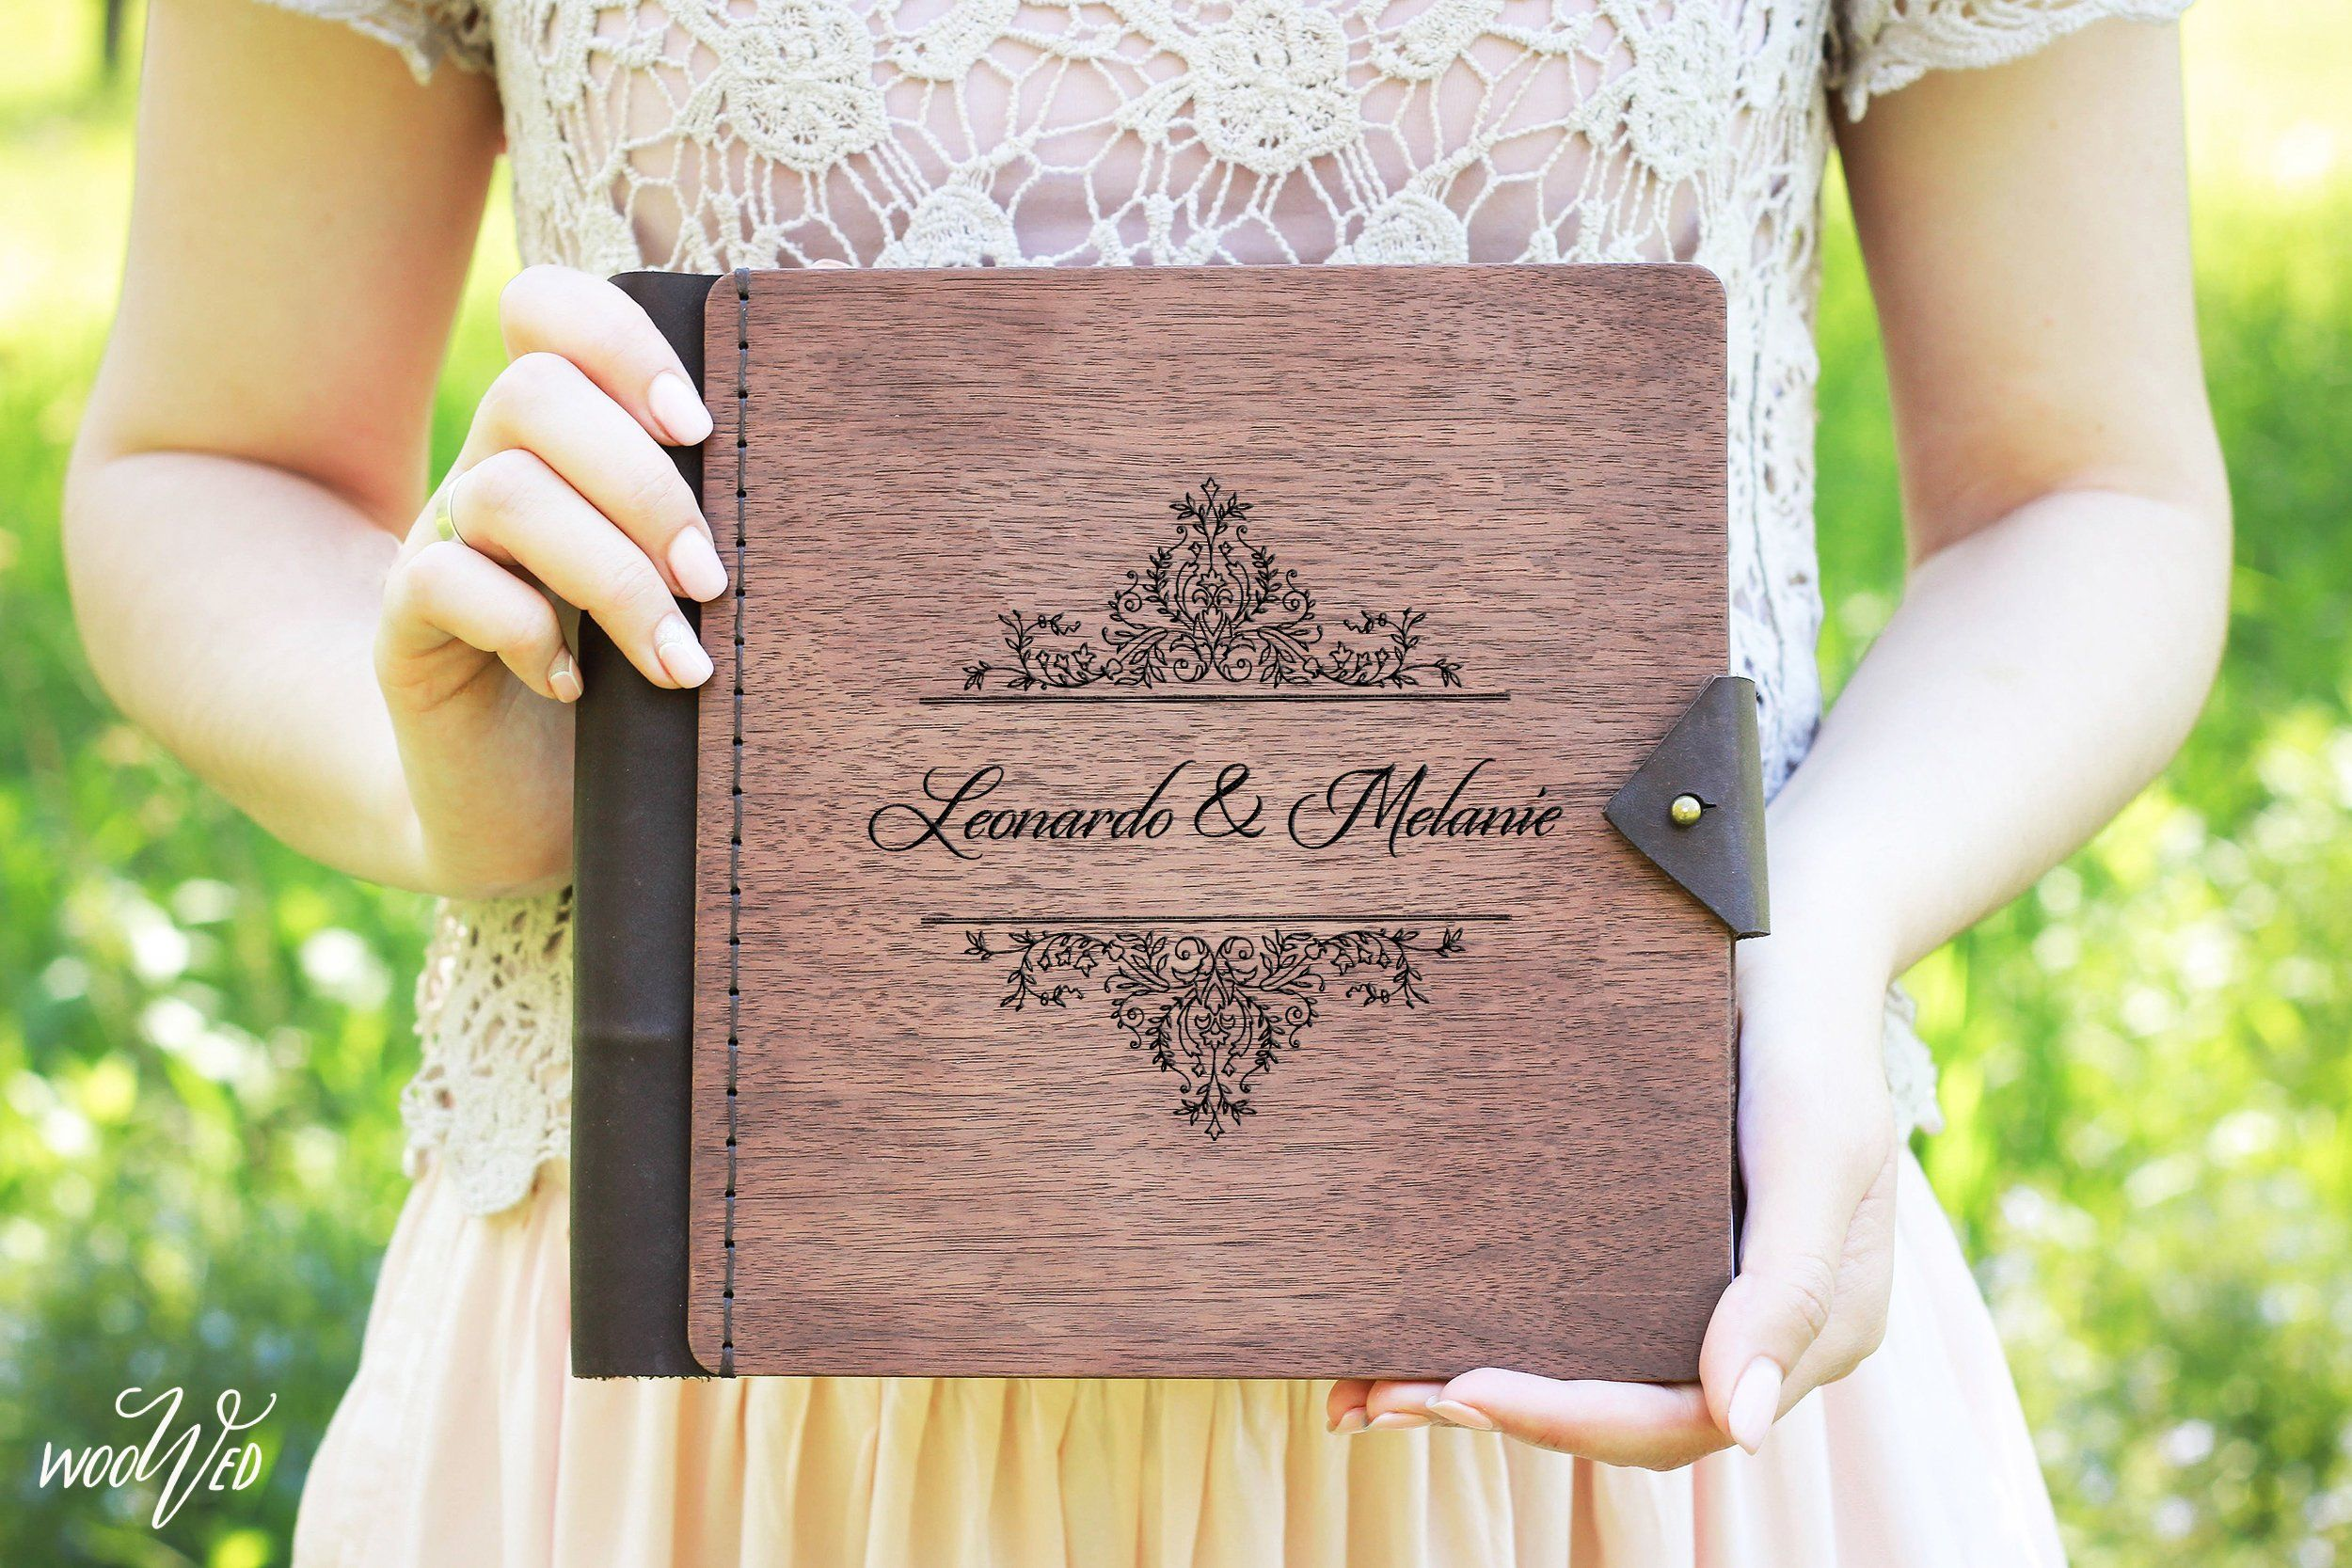 Monogram Wedding Guest Book Personalized Photo Book Custom Etsy Personalized Wedding Guest Book Wooden Wedding Guest Book Wedding Guest Book